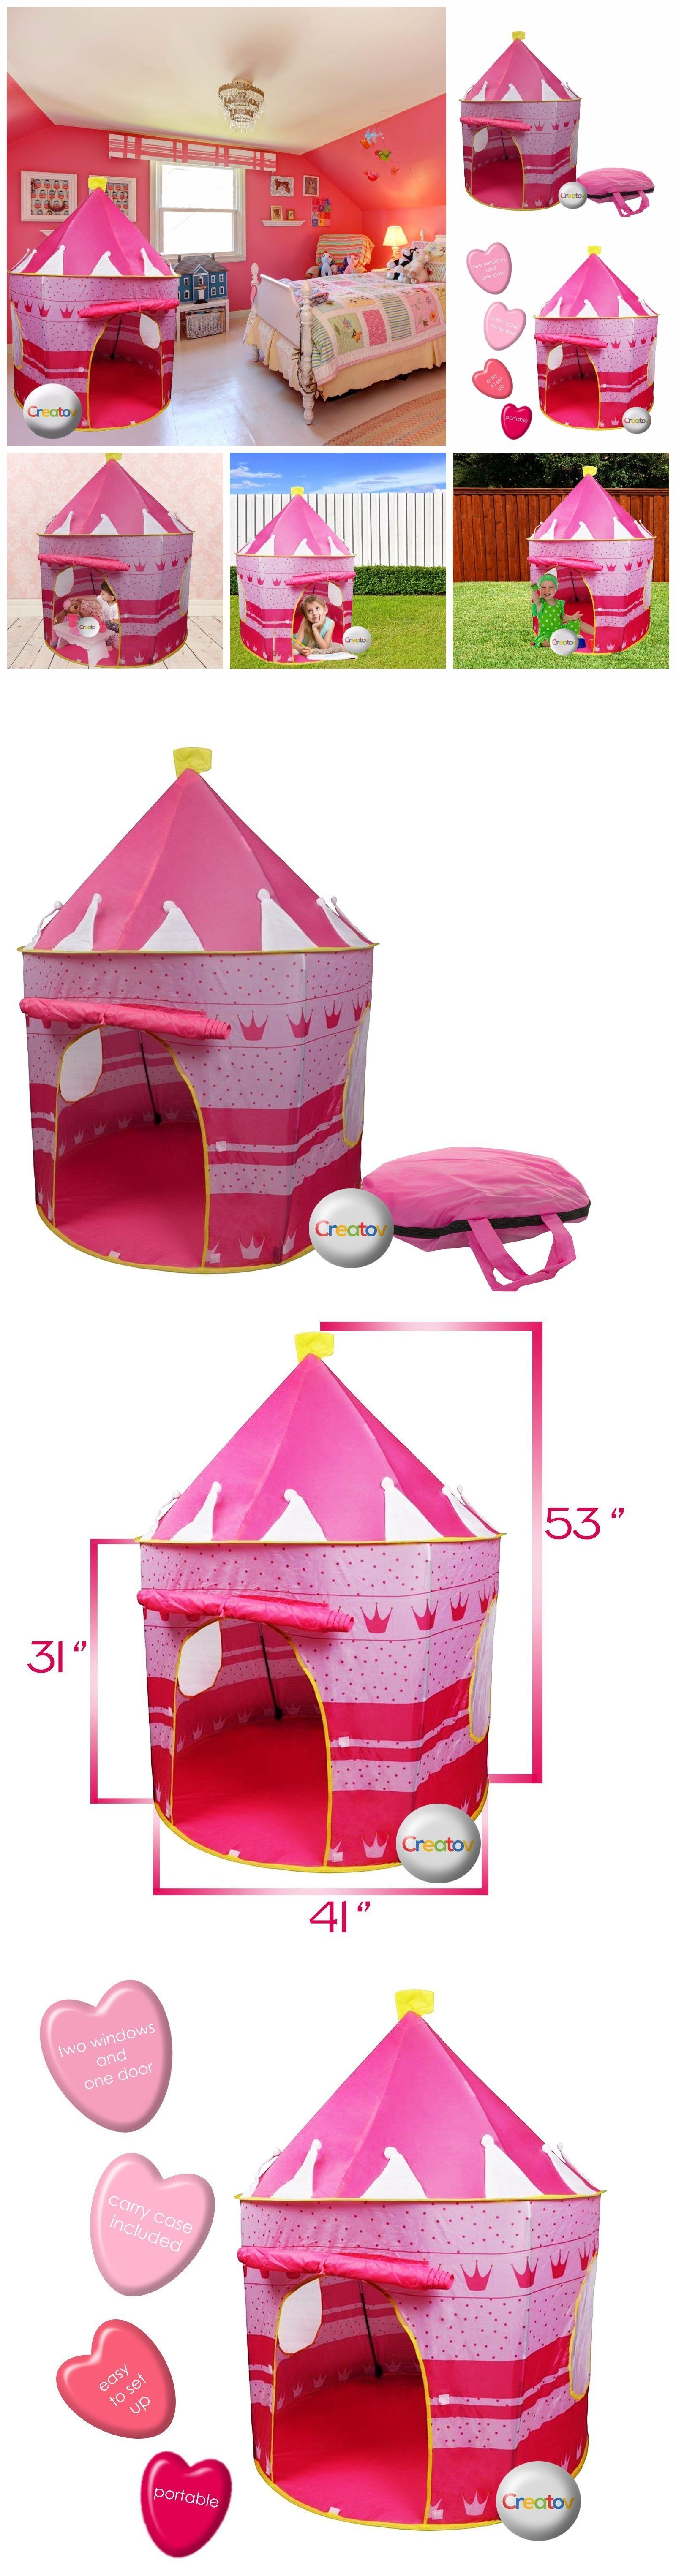 Play Tents 145997 Fairy Princess Castle Play Tent Indoor Playground For Kids Play Tents For  sc 1 st  Pinterest & Play Tents 145997: Fairy Princess Castle Play Tent Indoor ...